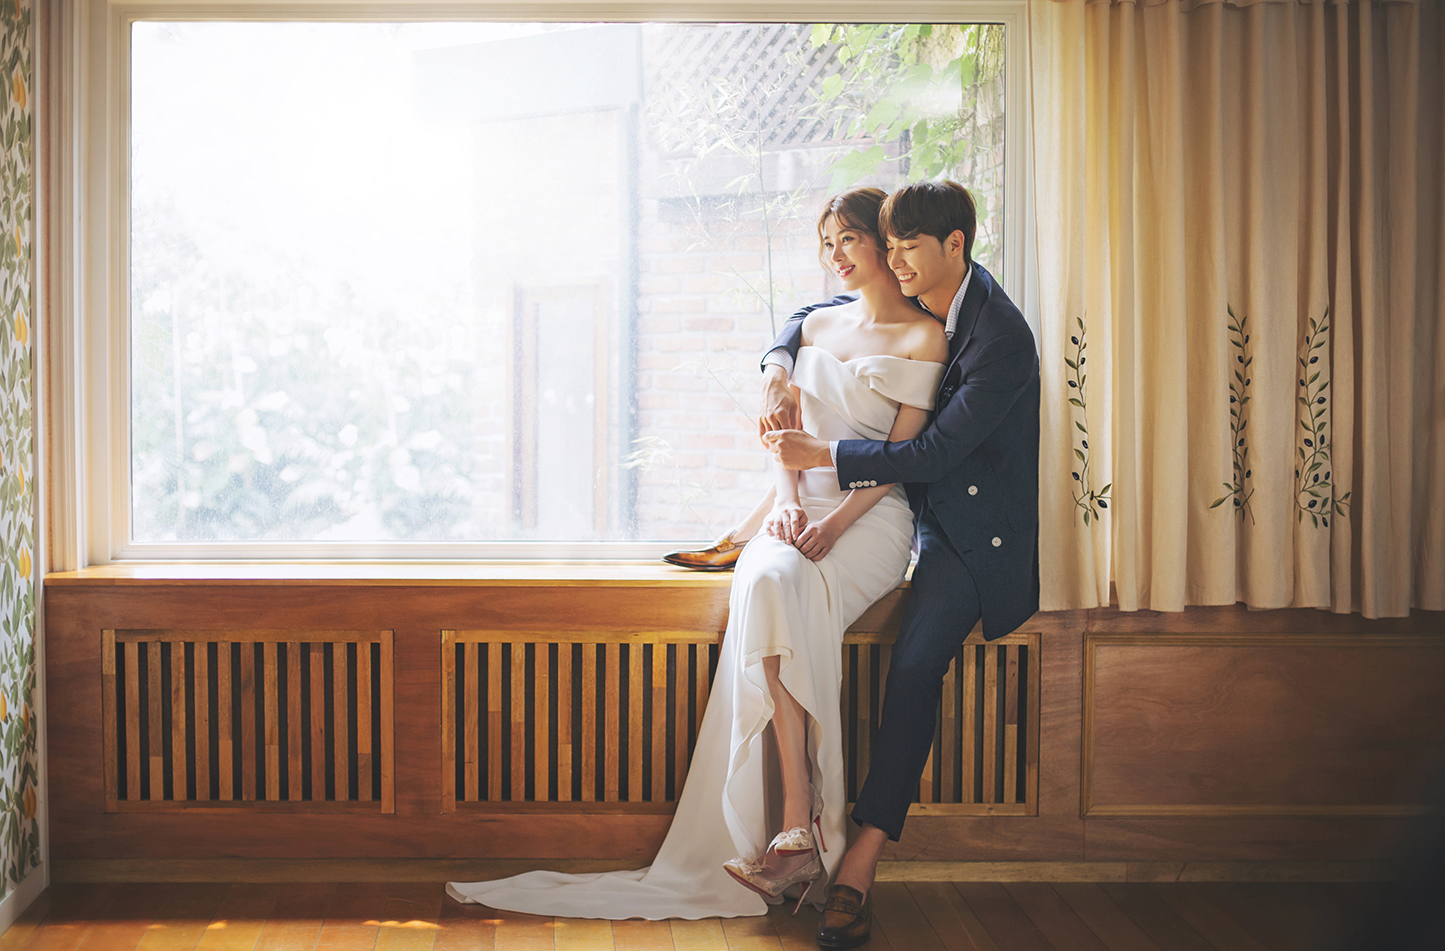 korean wedding photoshoot couple on a wooden window sill